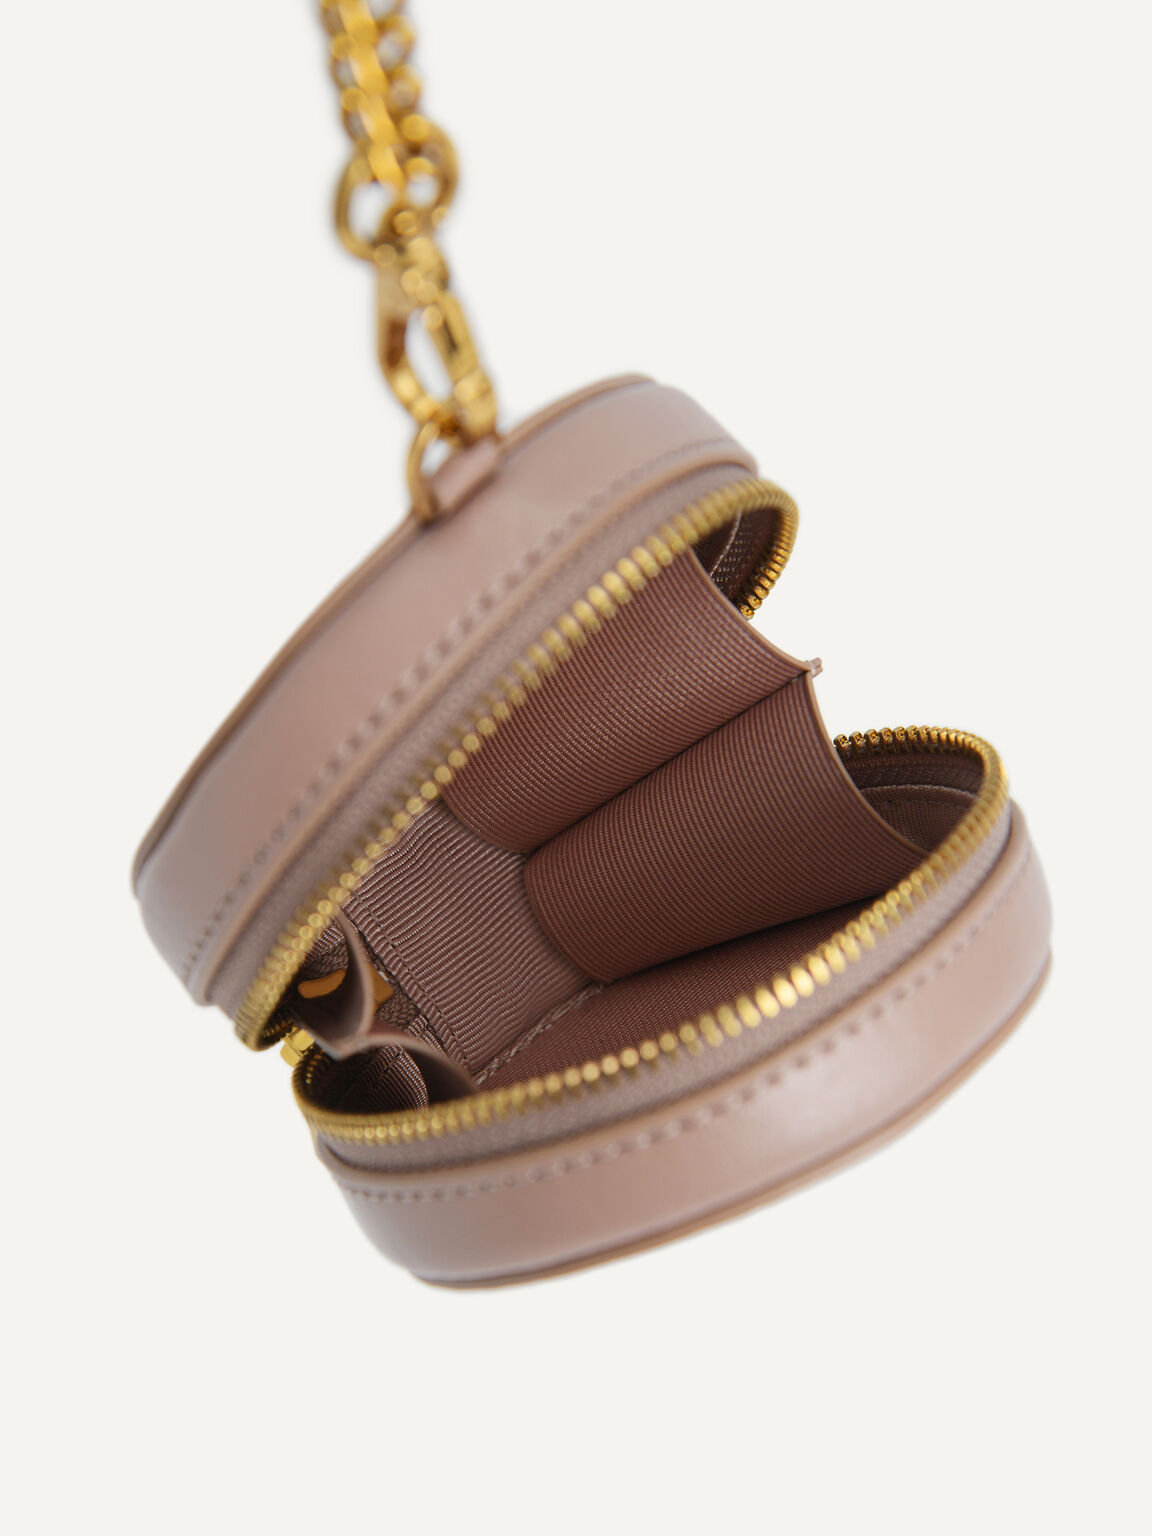 Mini Leather Pouch with Chain Handle, Taupe, hi-res